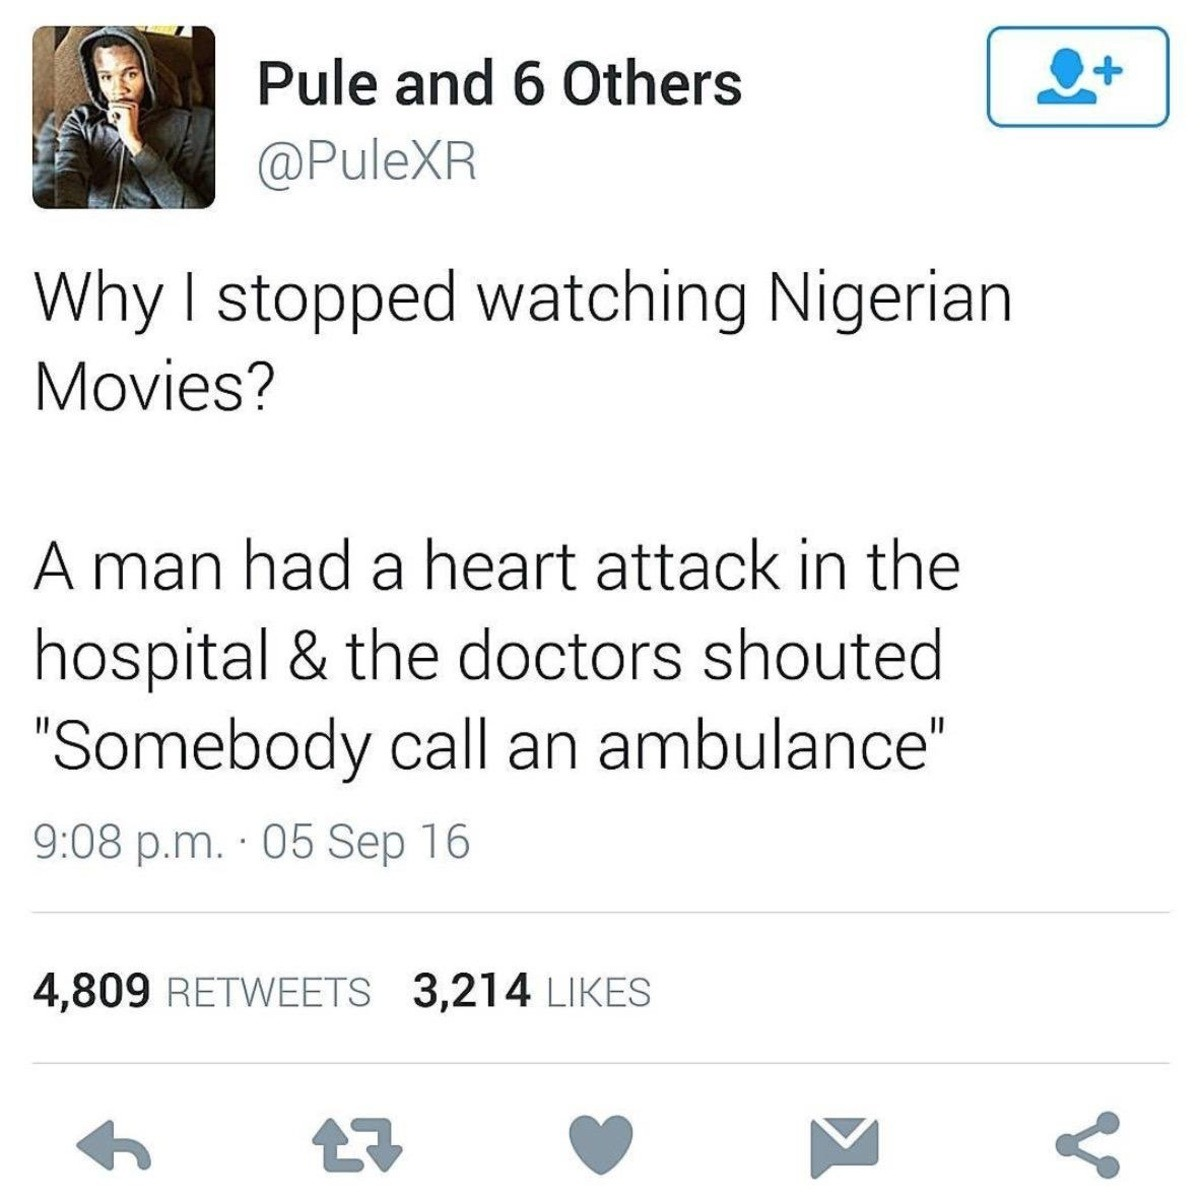 Quality Writing. .. I'm sorry, that sounds like a reason to start watching Nigerian movies